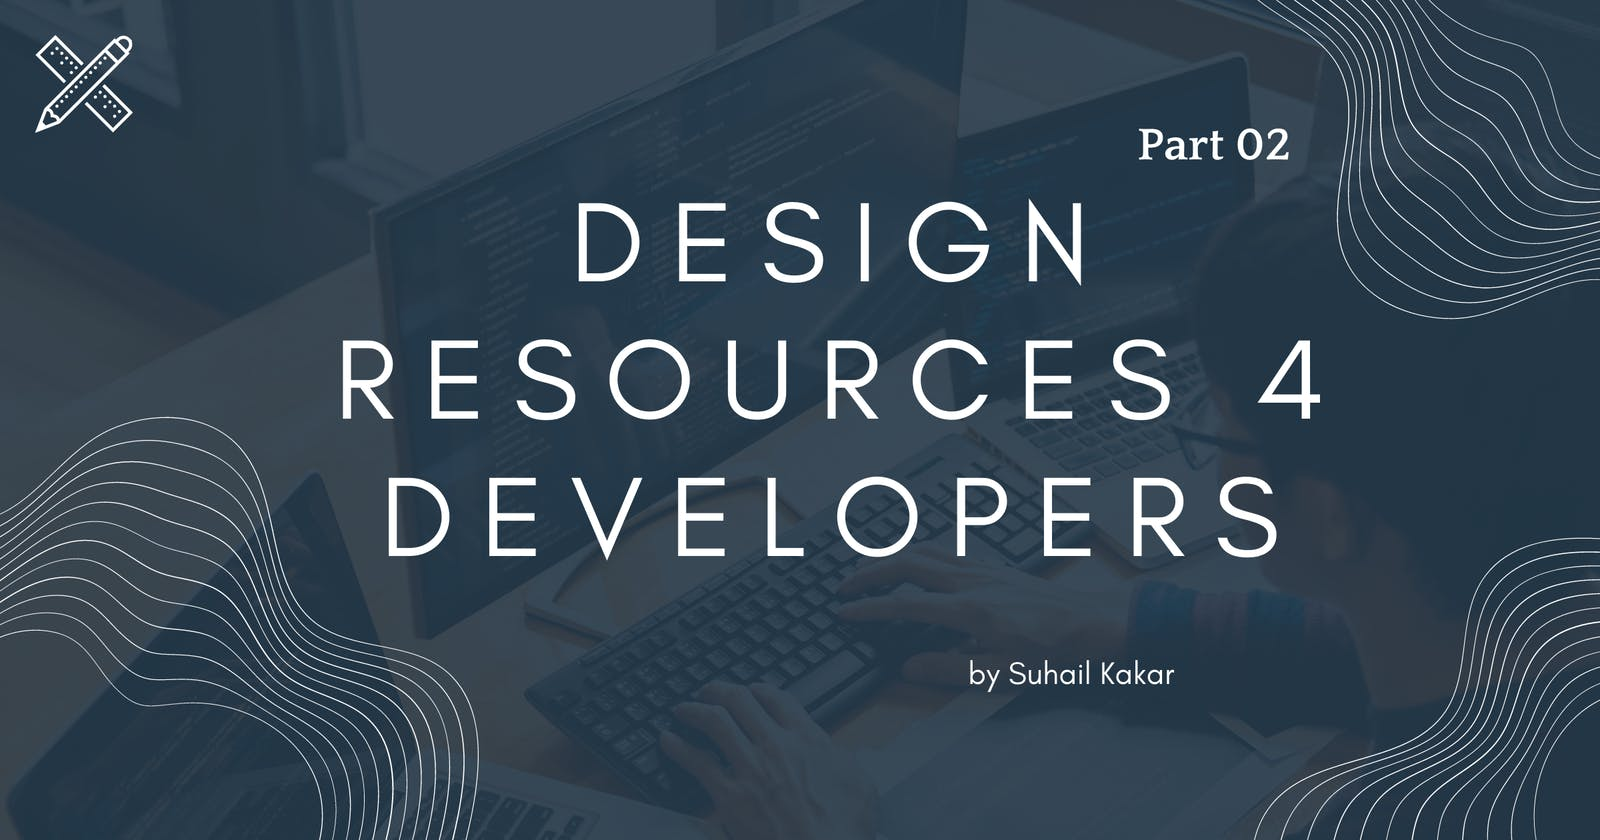 Design Resources for Developers - II